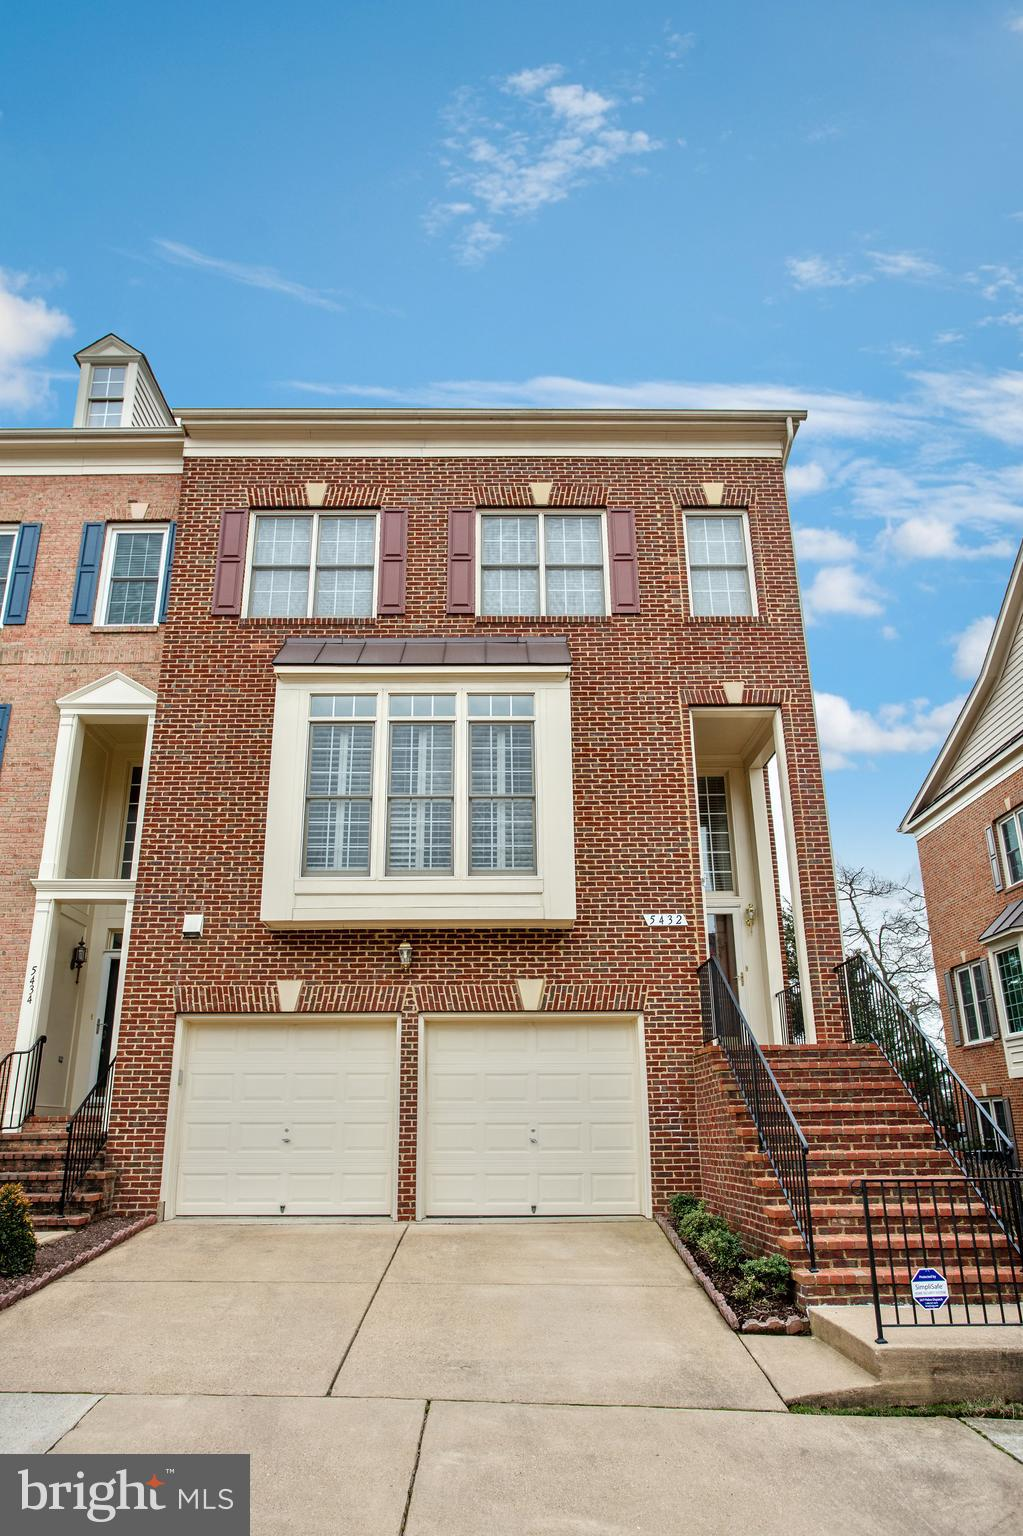 Amazing end unit townhome is sought after Ridges at Edsall. Hardwood floors throughout home. Spacious living area with gas fireplace. Gourmet kitchen with center island, gas cooktop, white cabinets. Walk out to deck for entertaining. Large master bedroom with sitting area. Master bathroom with separate tub and shower. 3 additional bedrooms on upper level. Finished basement with gas fireplace walks out to private patio and fenced yard. 2 car garage. CLOSE    TO METRO! Located a little over a mile from the Van Dorn Metro Station, Overlook is just five miles away from the attractions of Old Town Alexandria and less than 1 mile to I-395.   Overlook is also close to major employers such as the Pentagon and Fort Belvoir and 12 miles away from Downtown DC. Across the street from Bren Mar Park with hiking trails, play ground and the ability to join Bren Mar Pool.